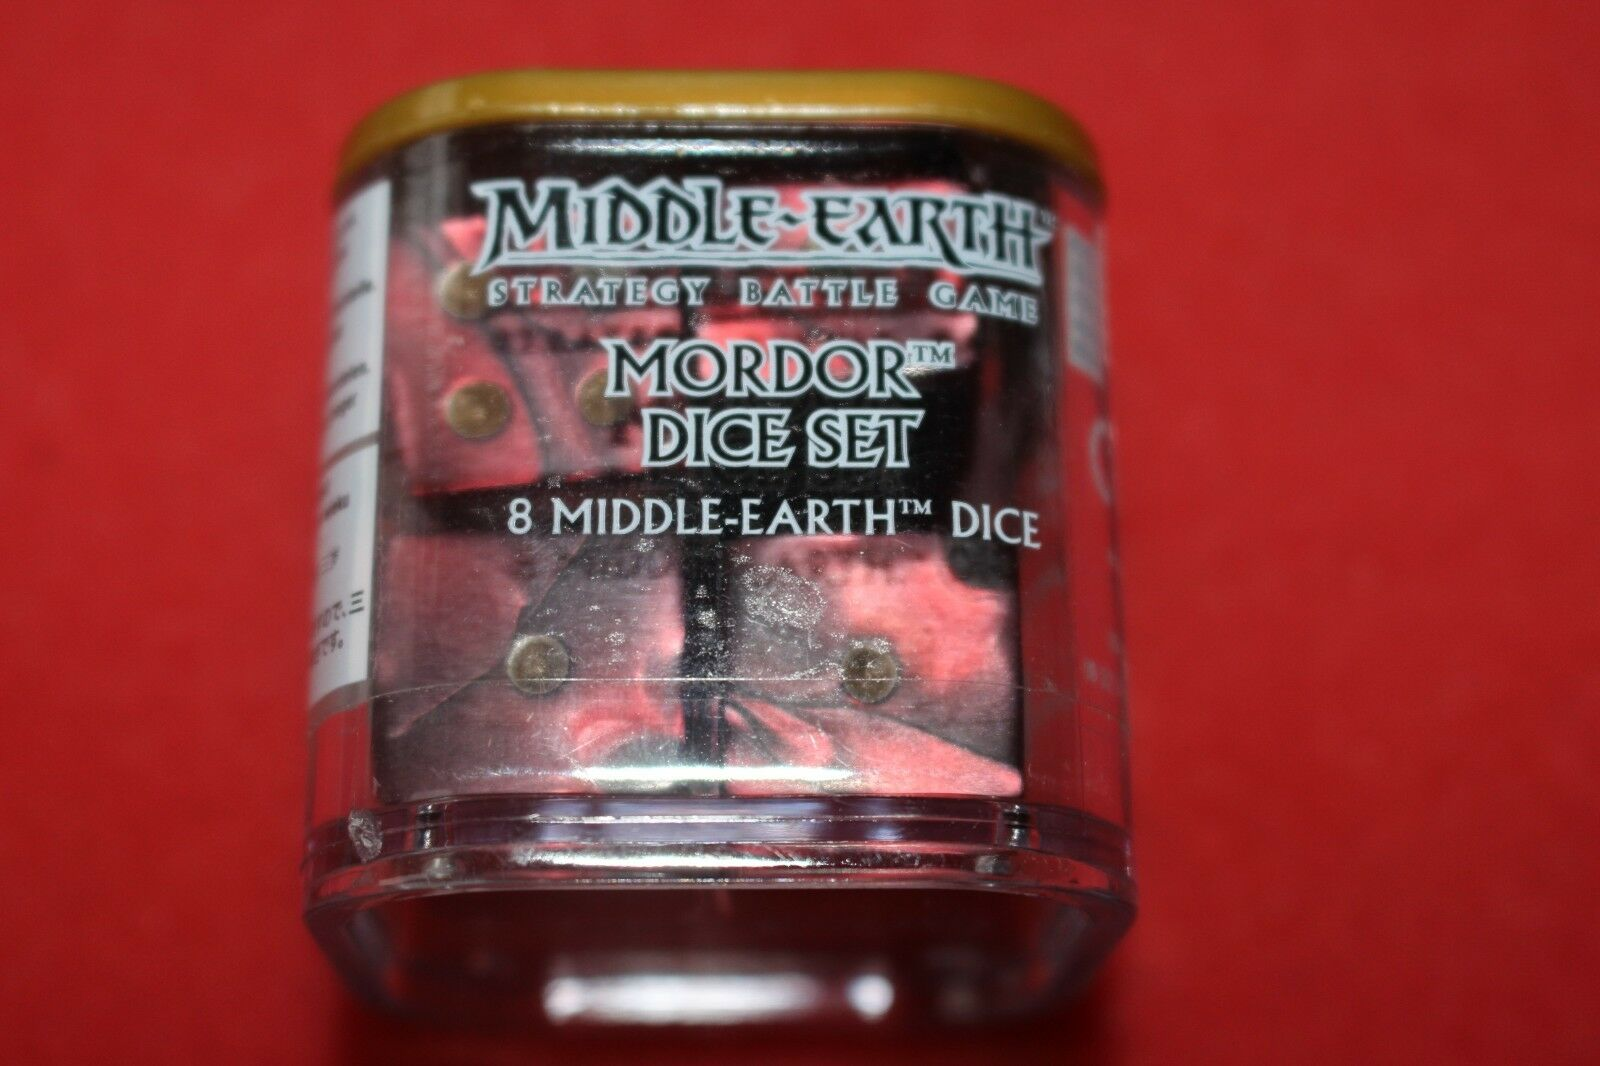 Games Workshop Mordor Dice Cube Red Warhammer 40k D6 New LoTR Lord of the Rings